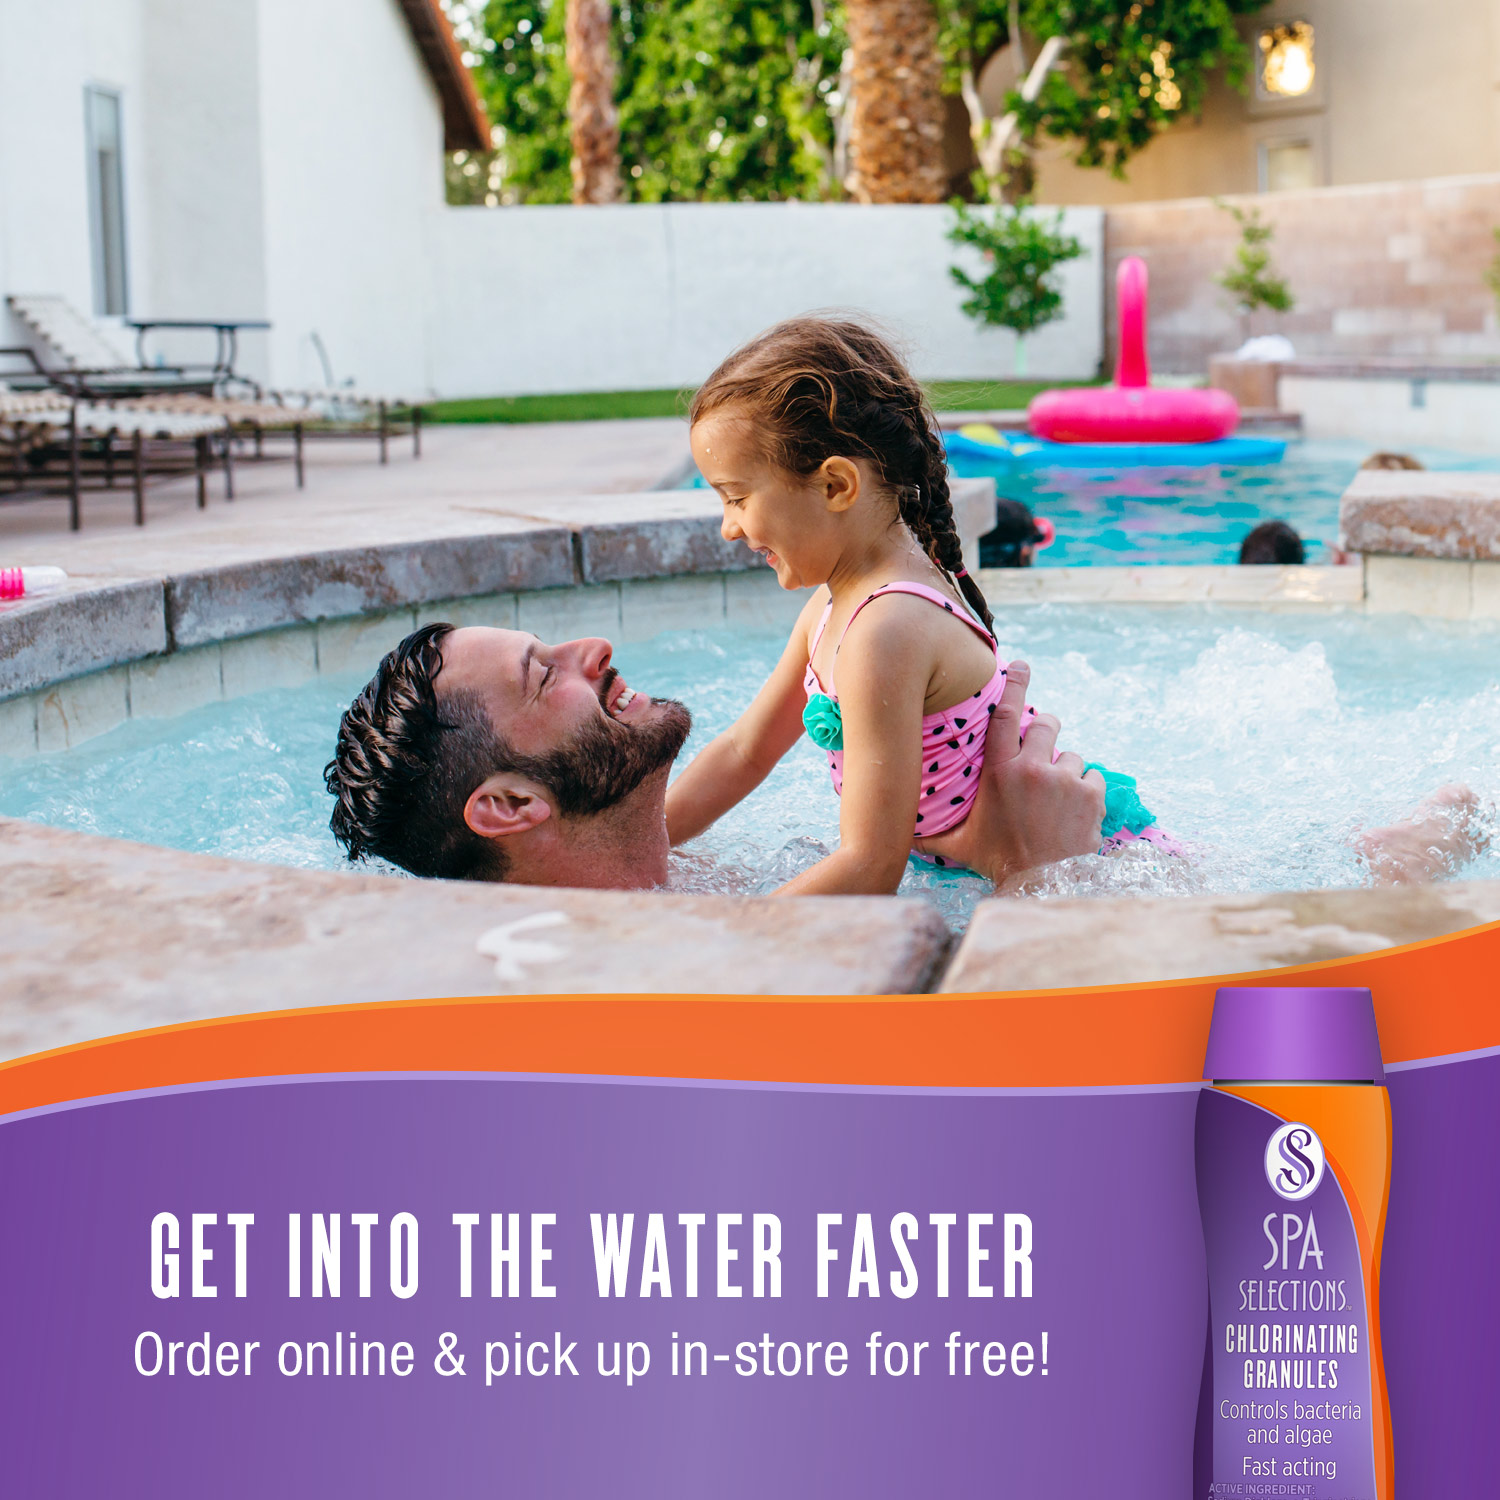 Father and daughter enjoying outdoor hot tub. Get into the water faster with Spa Selections chlorinating granules order online and pick up in-store for free!